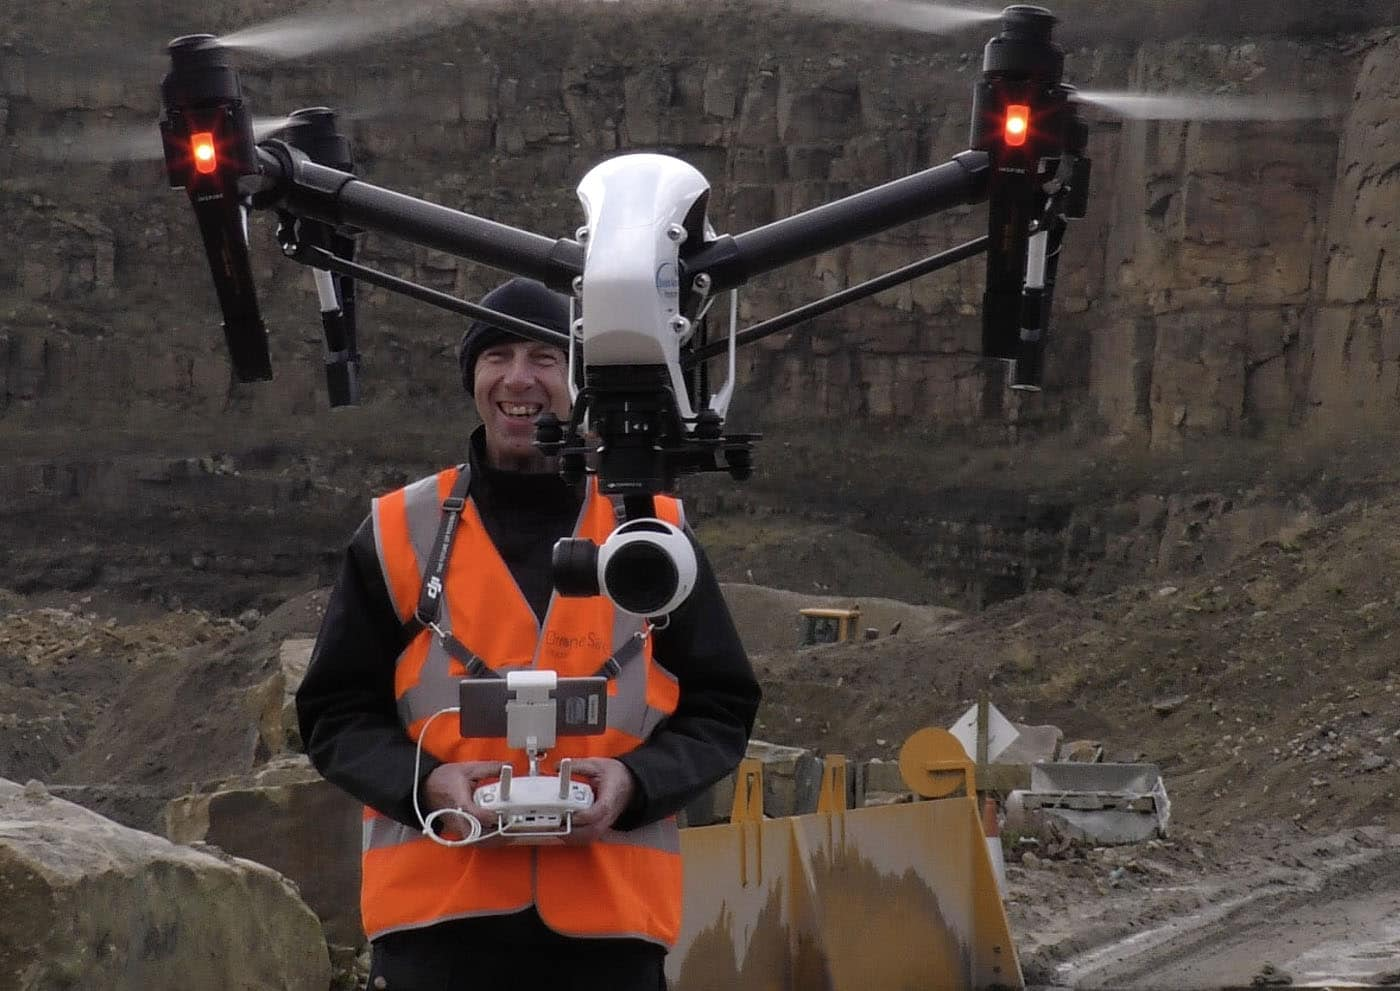 Who is Skylark Aerial Photography?